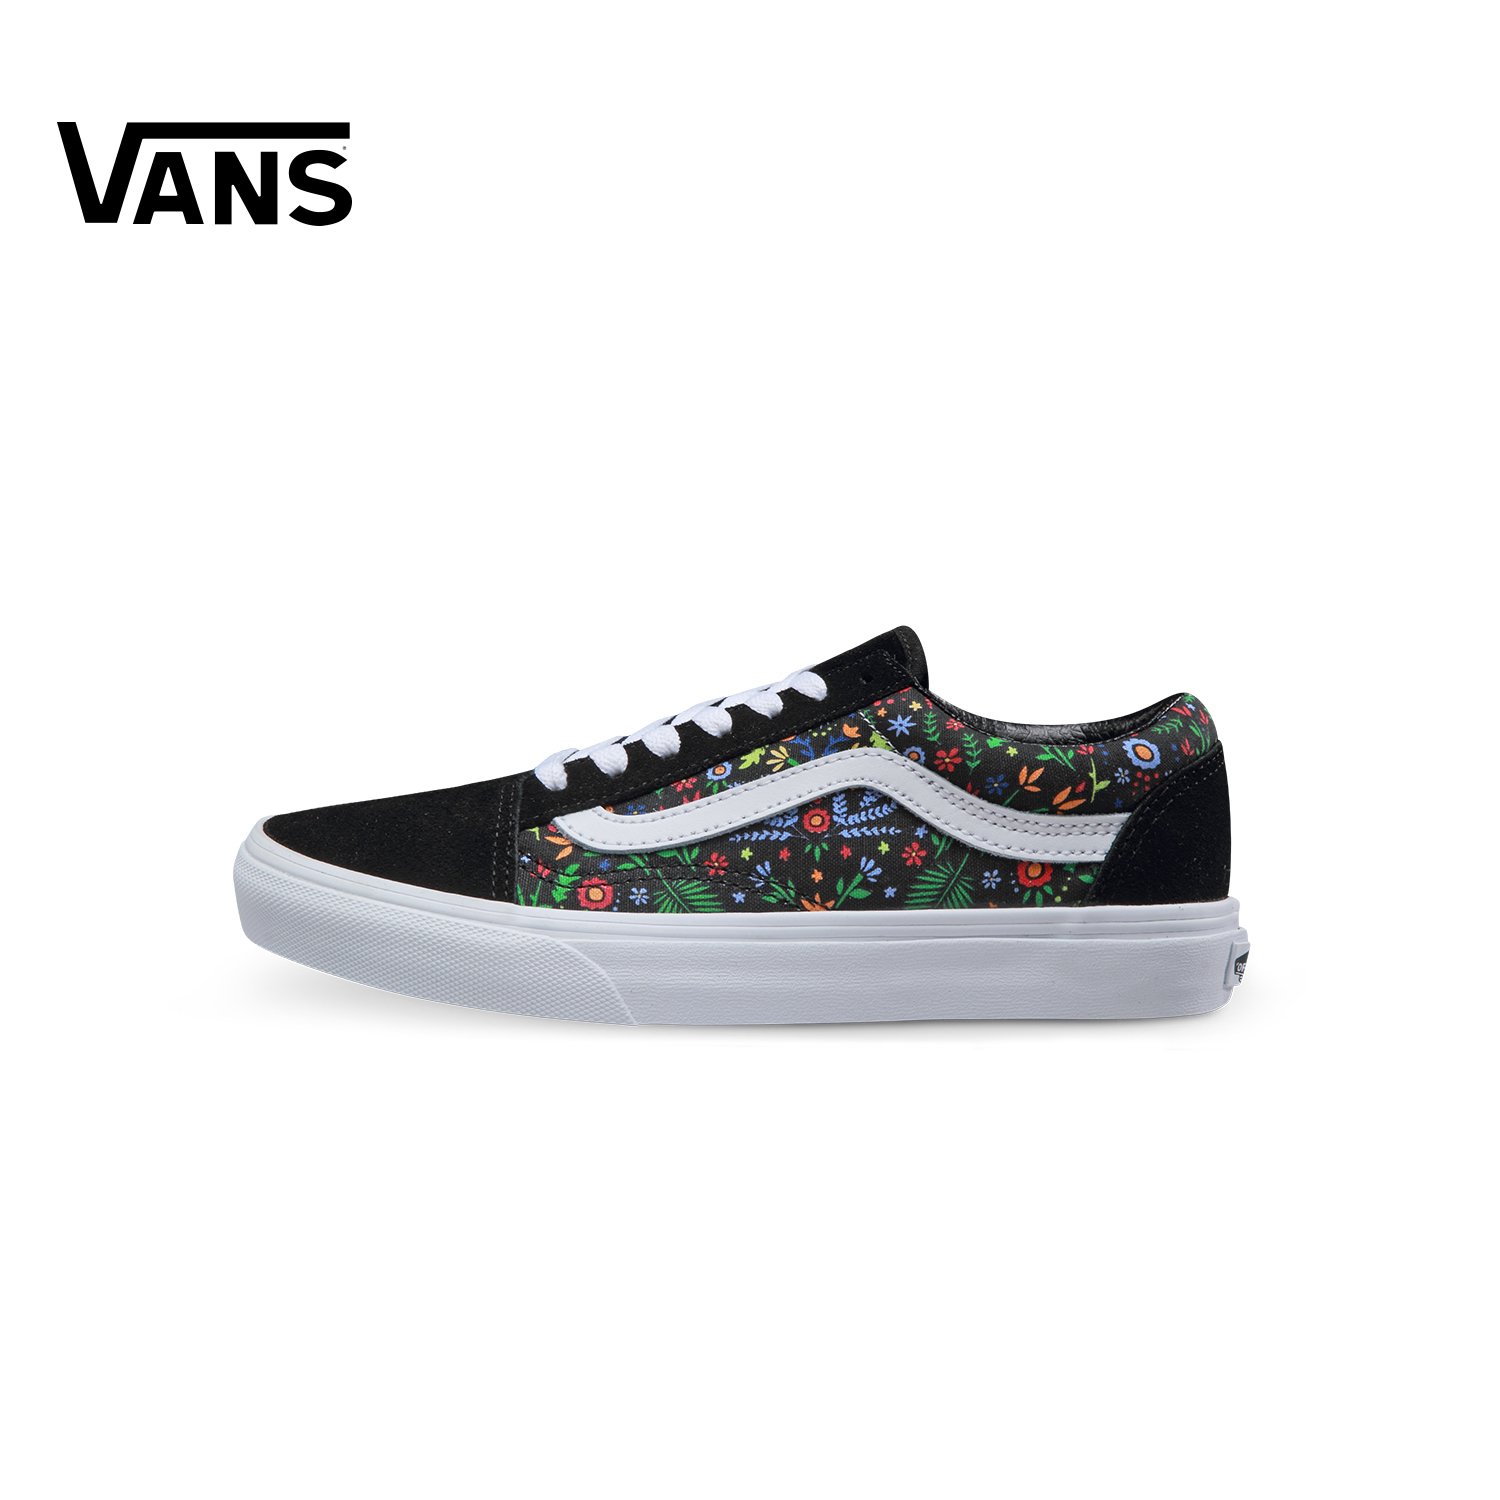 Original Original Vans Low-Top Women's Skateboarding Shoes Sport Shoes Canvas Sneakers Breathable Colorful Good Quality glowing sneakers usb charging shoes lights up colorful led kids luminous sneakers glowing sneakers black led shoes for boys